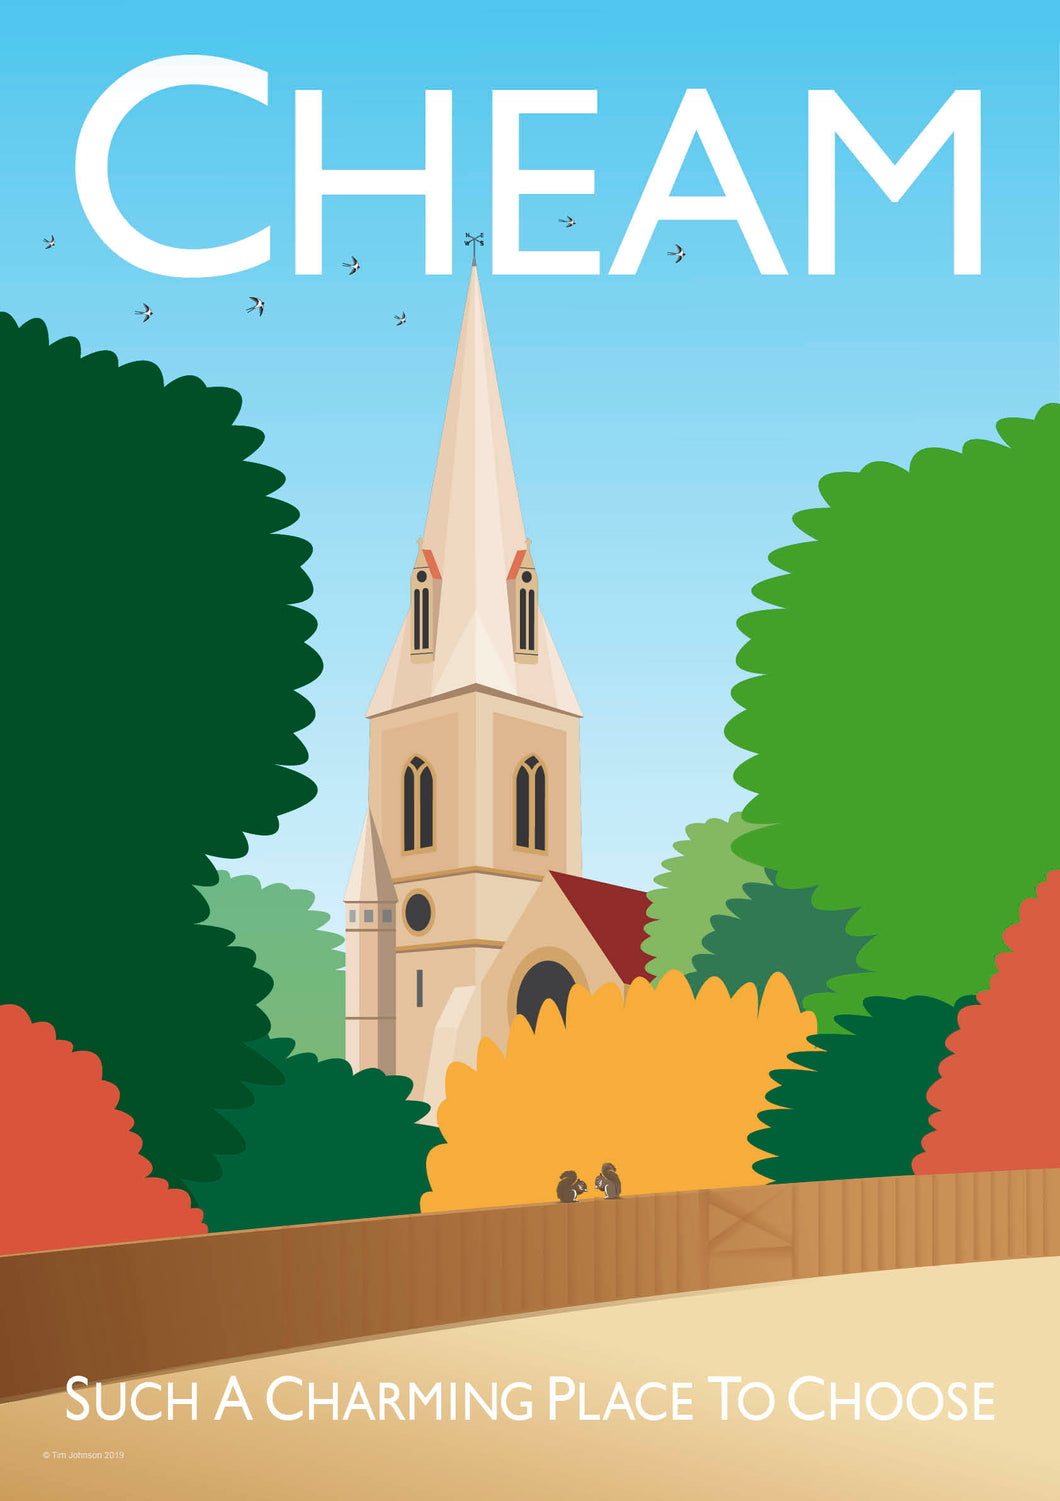 A vintage style poster of Cheam in London. Featuring the iconic village church.   Vintage style posters lovingly designed by Tim Johnson.  Available in A4 and A3. Unmounted and unframed high quality print. Shipped within UK via courier. Mounting and framing options available, please get in touch!